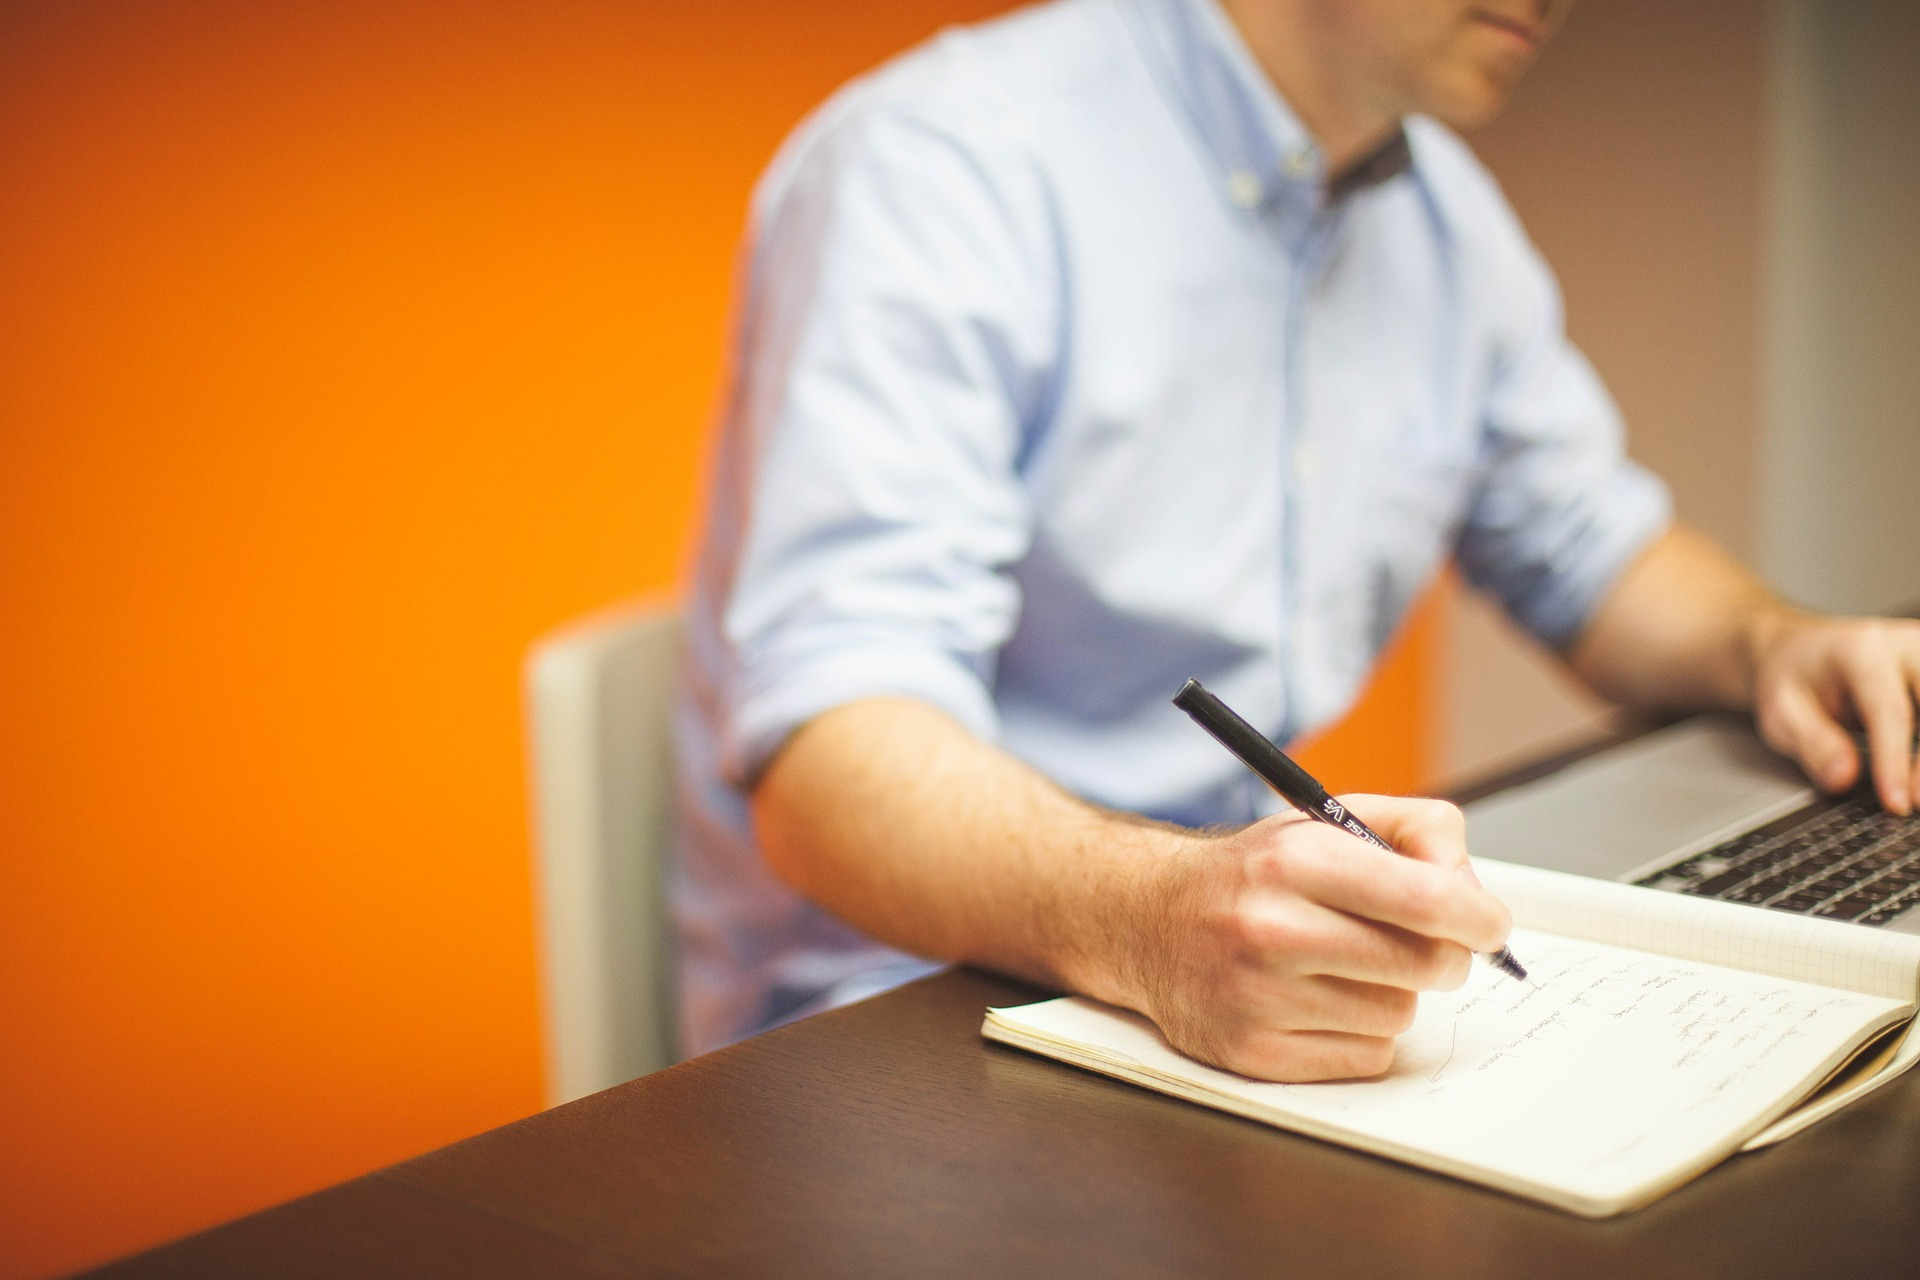 Man in blue button down writing in notebook against orange wall